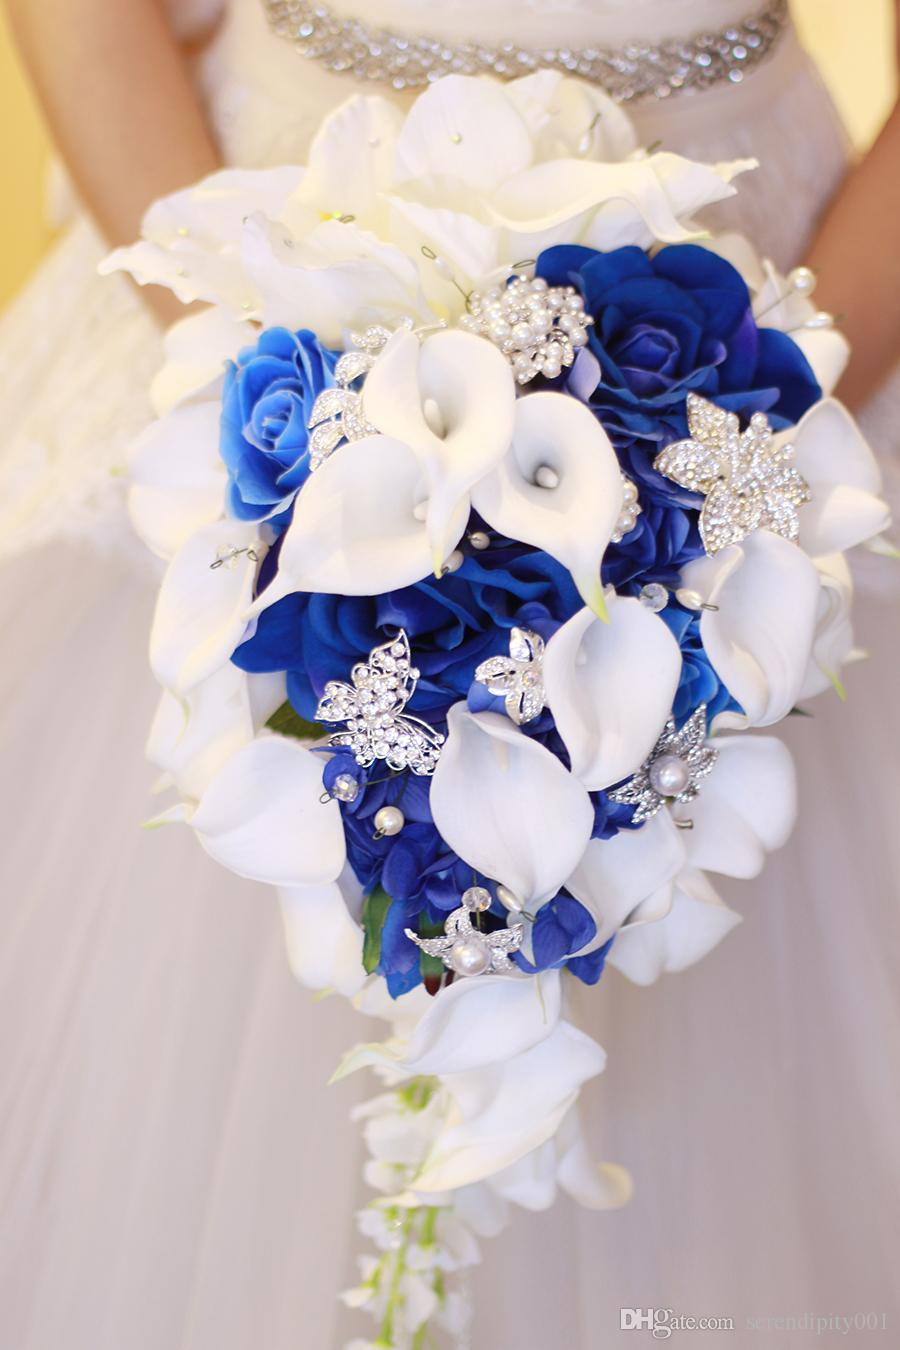 Vintage western style wedding bouquet for brides crystal flowers brides crystal flowers bridal bouquets waterfall brooch buque de noiva artificial holding flowers most popular wedding flowers navy blue wedding flowers mightylinksfo